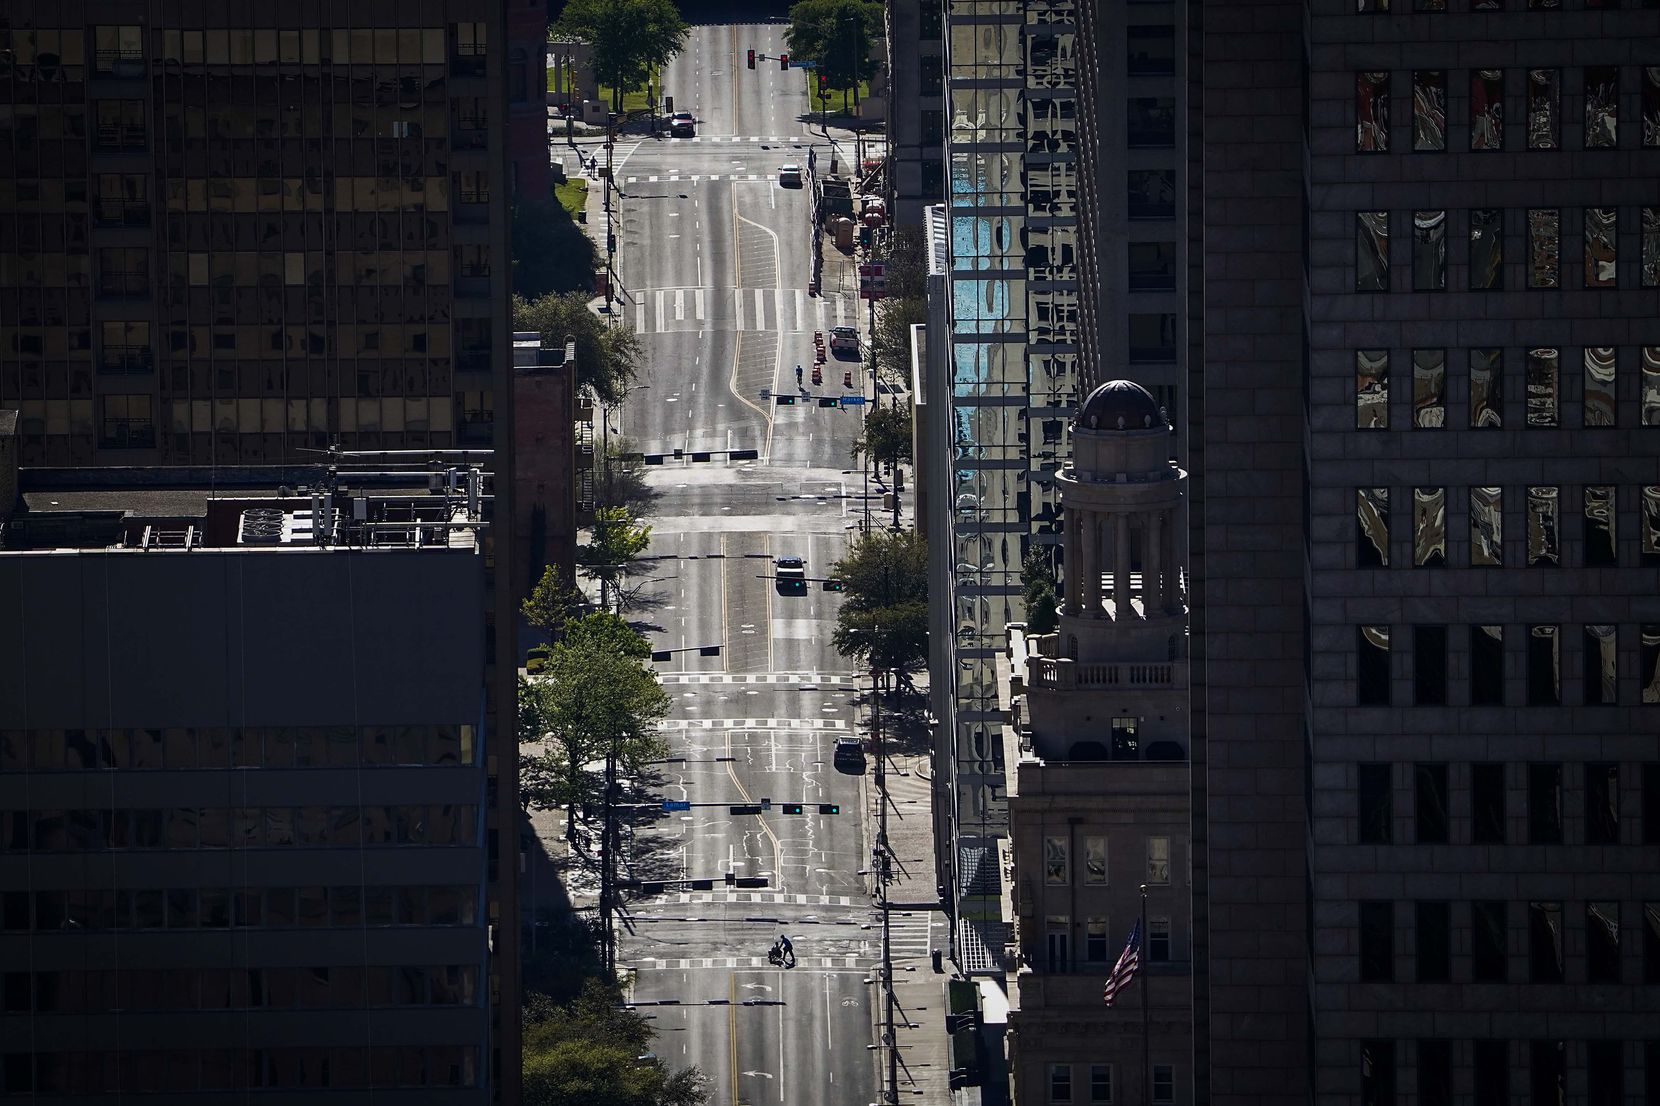 A nearly empty Main Street in downtown Dallas just after 5:00 p.m. on Tuesday, March 24, 2020, when the business day would normally be ending and commuters typically pour out to head home.